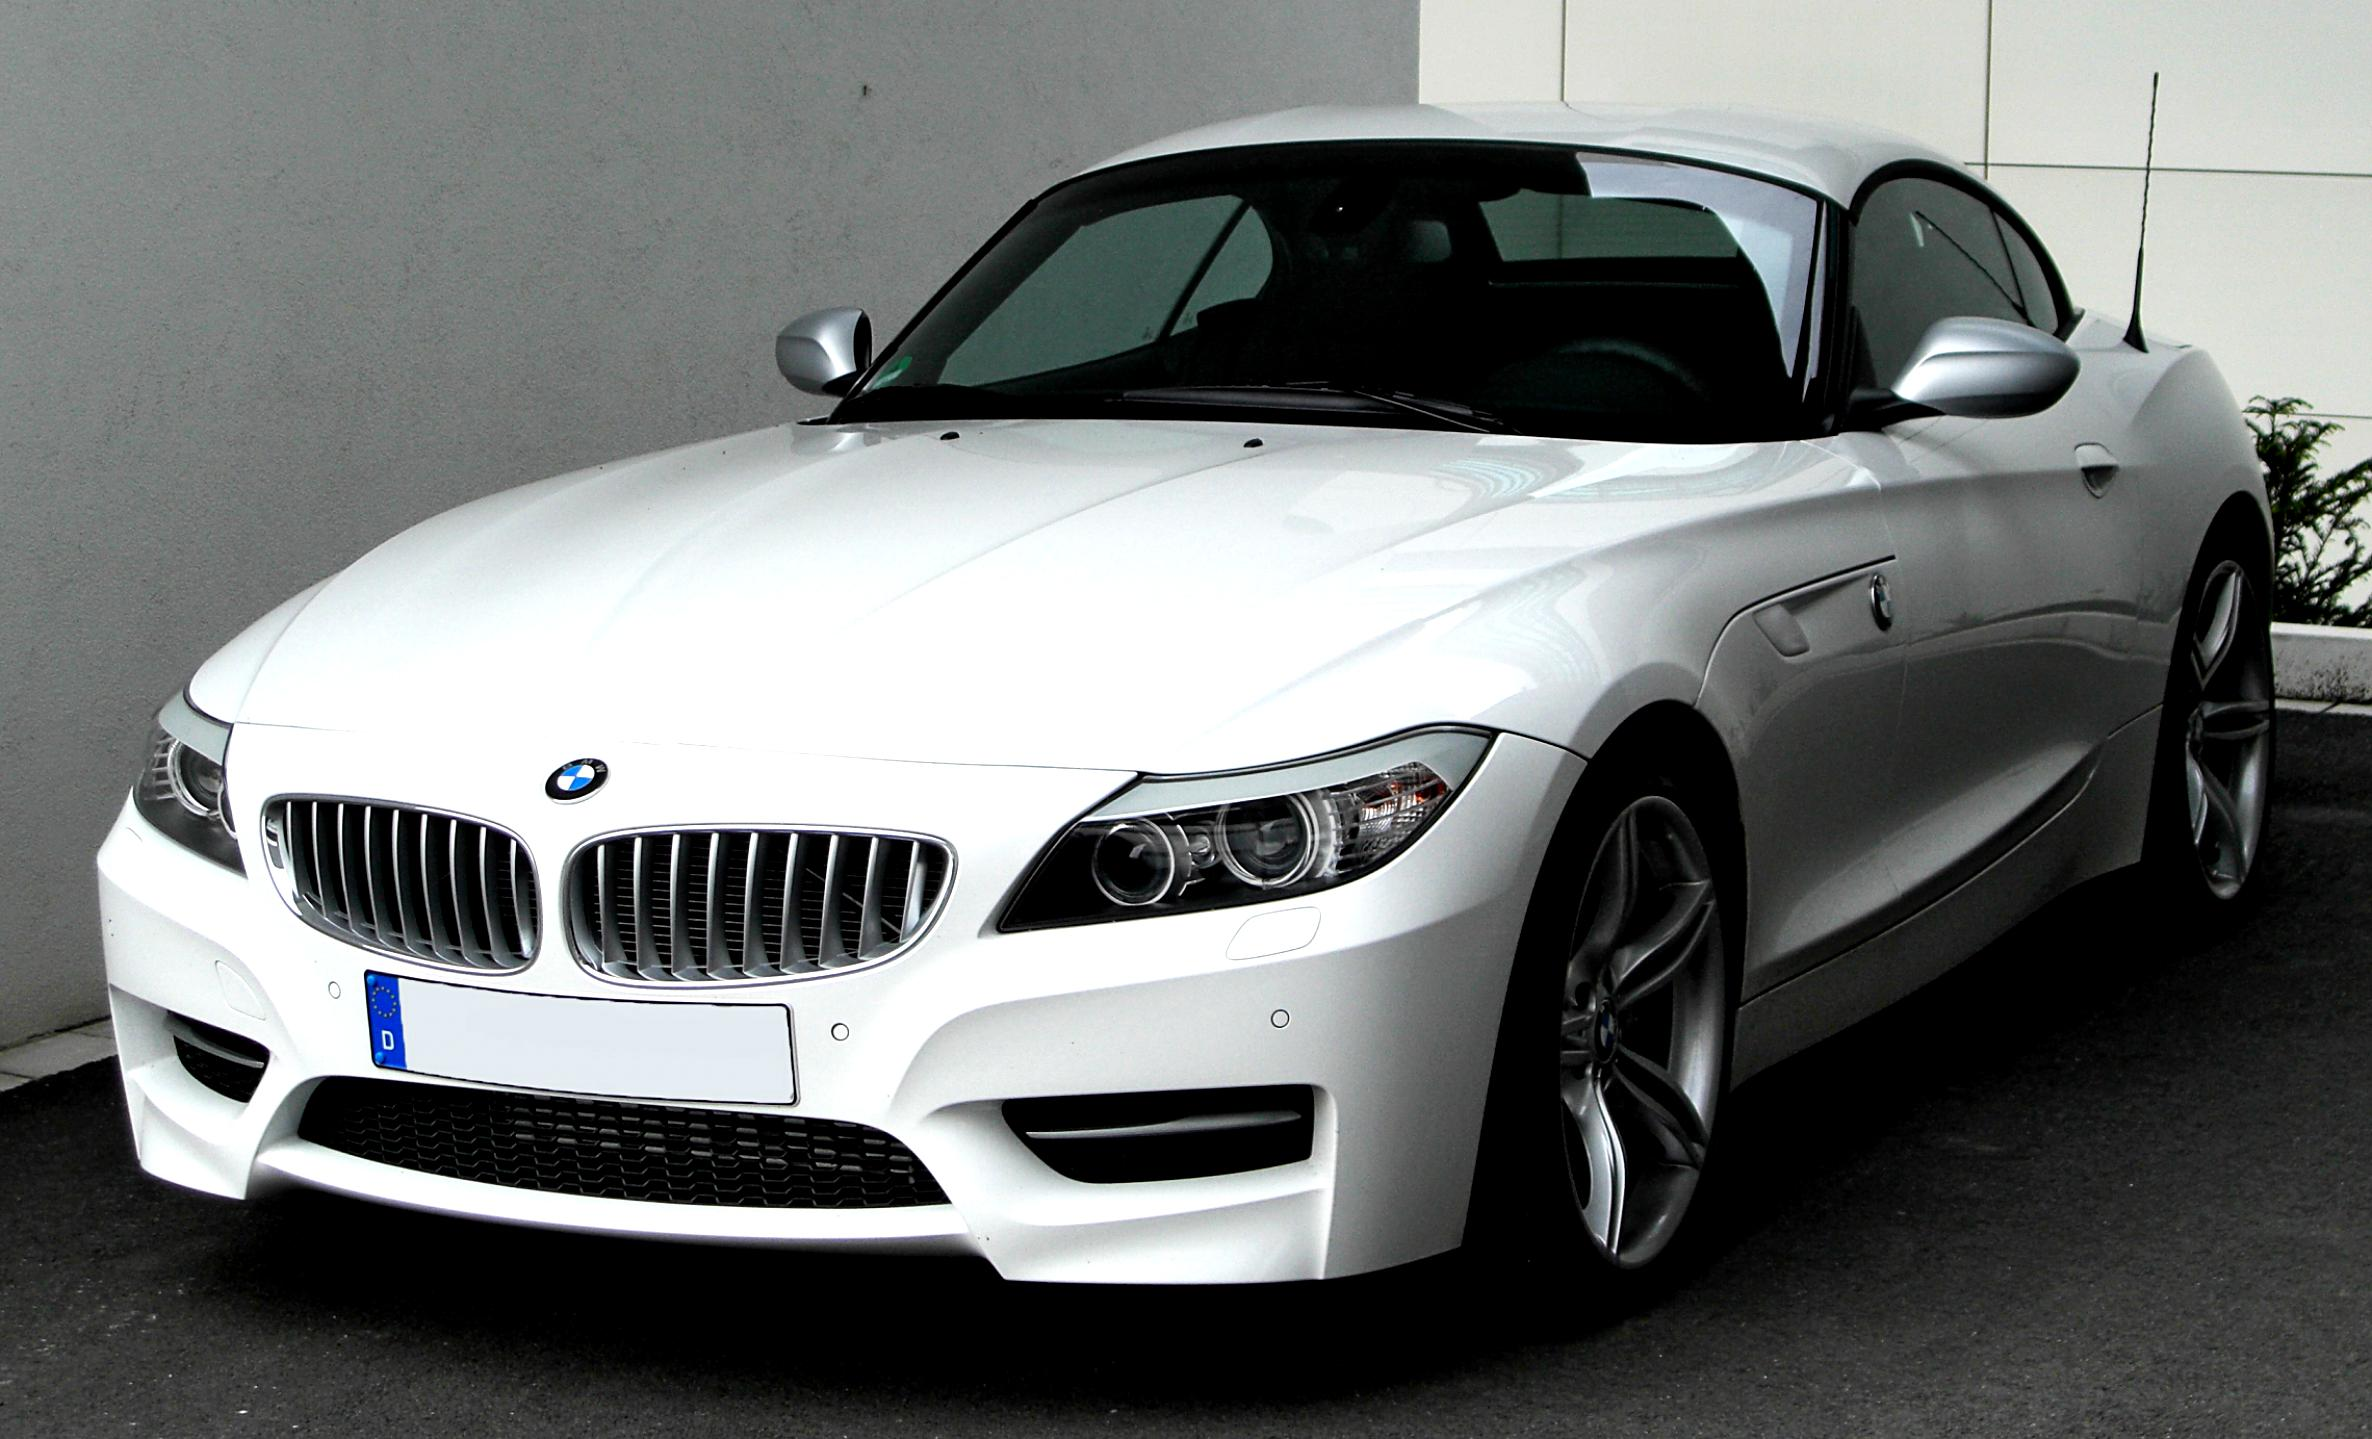 Bmw Z4 Roadster E89 2009 On Motoimg Com